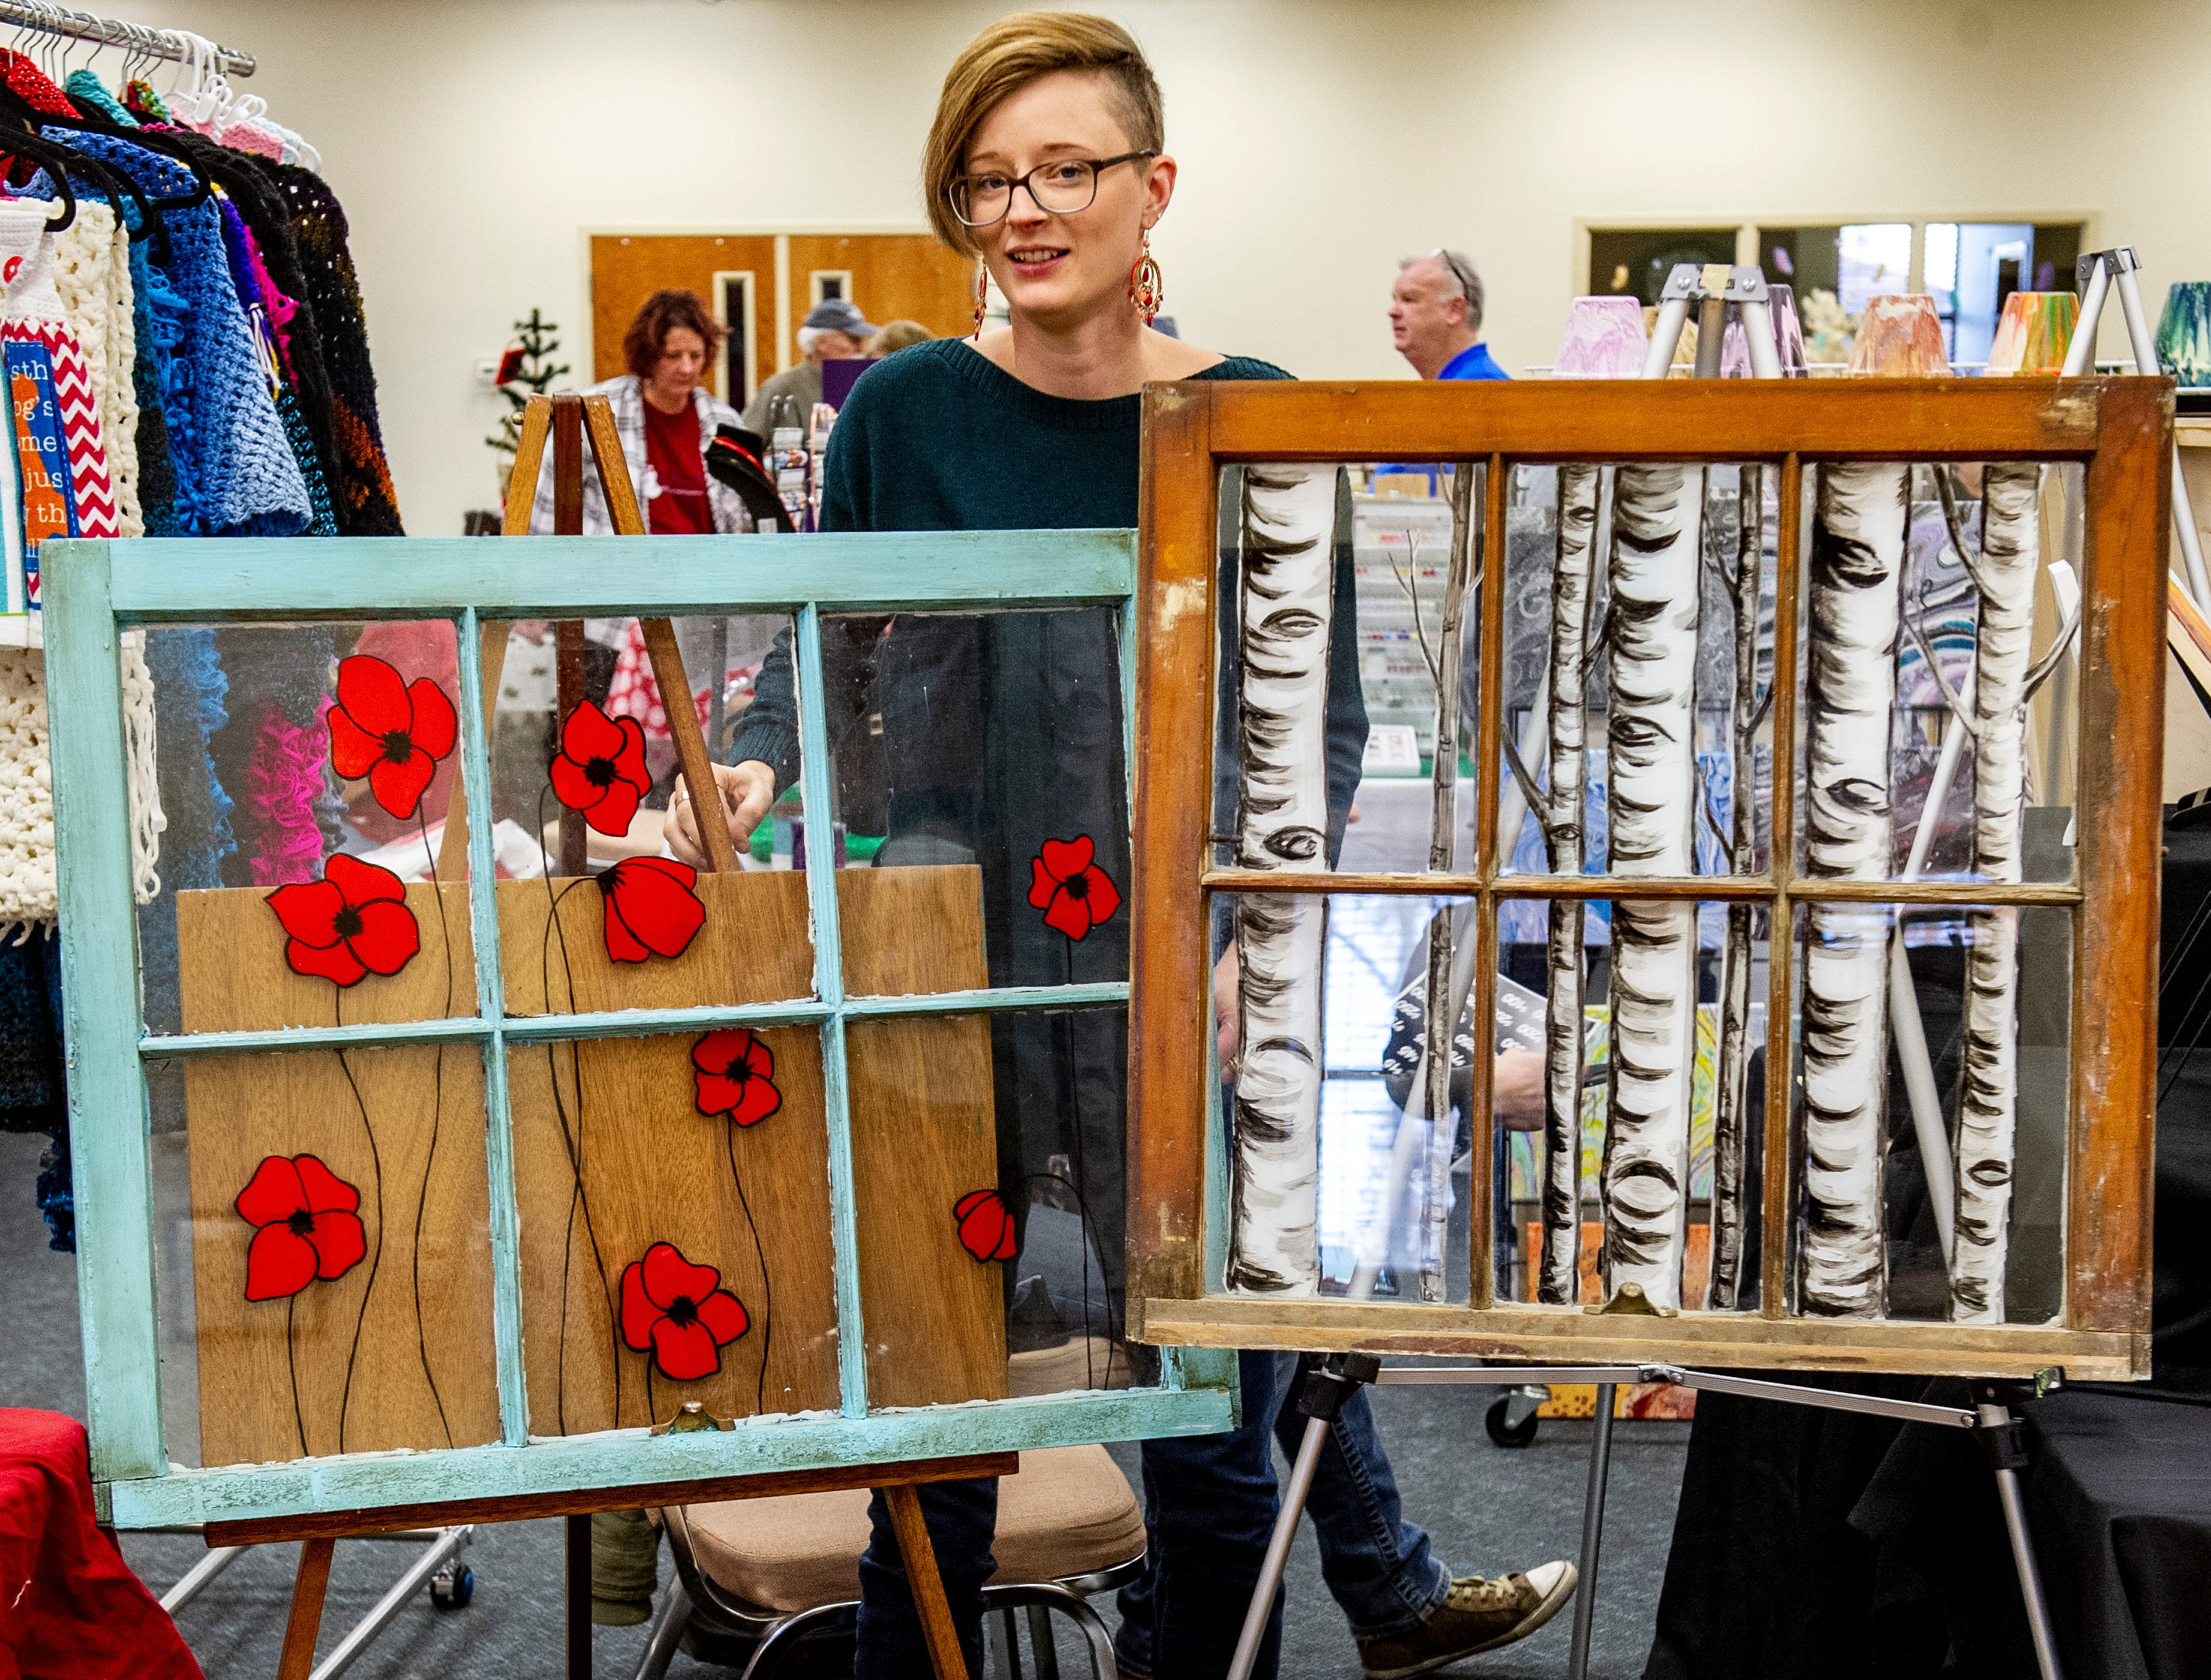 Indianola artist Megan Endriss displayed several re-purposed items for art at the Rustiqueiowa Homespun Holiday Market held at the Trinity Presbyterian Church in Indianola Nov. 24, 2018.